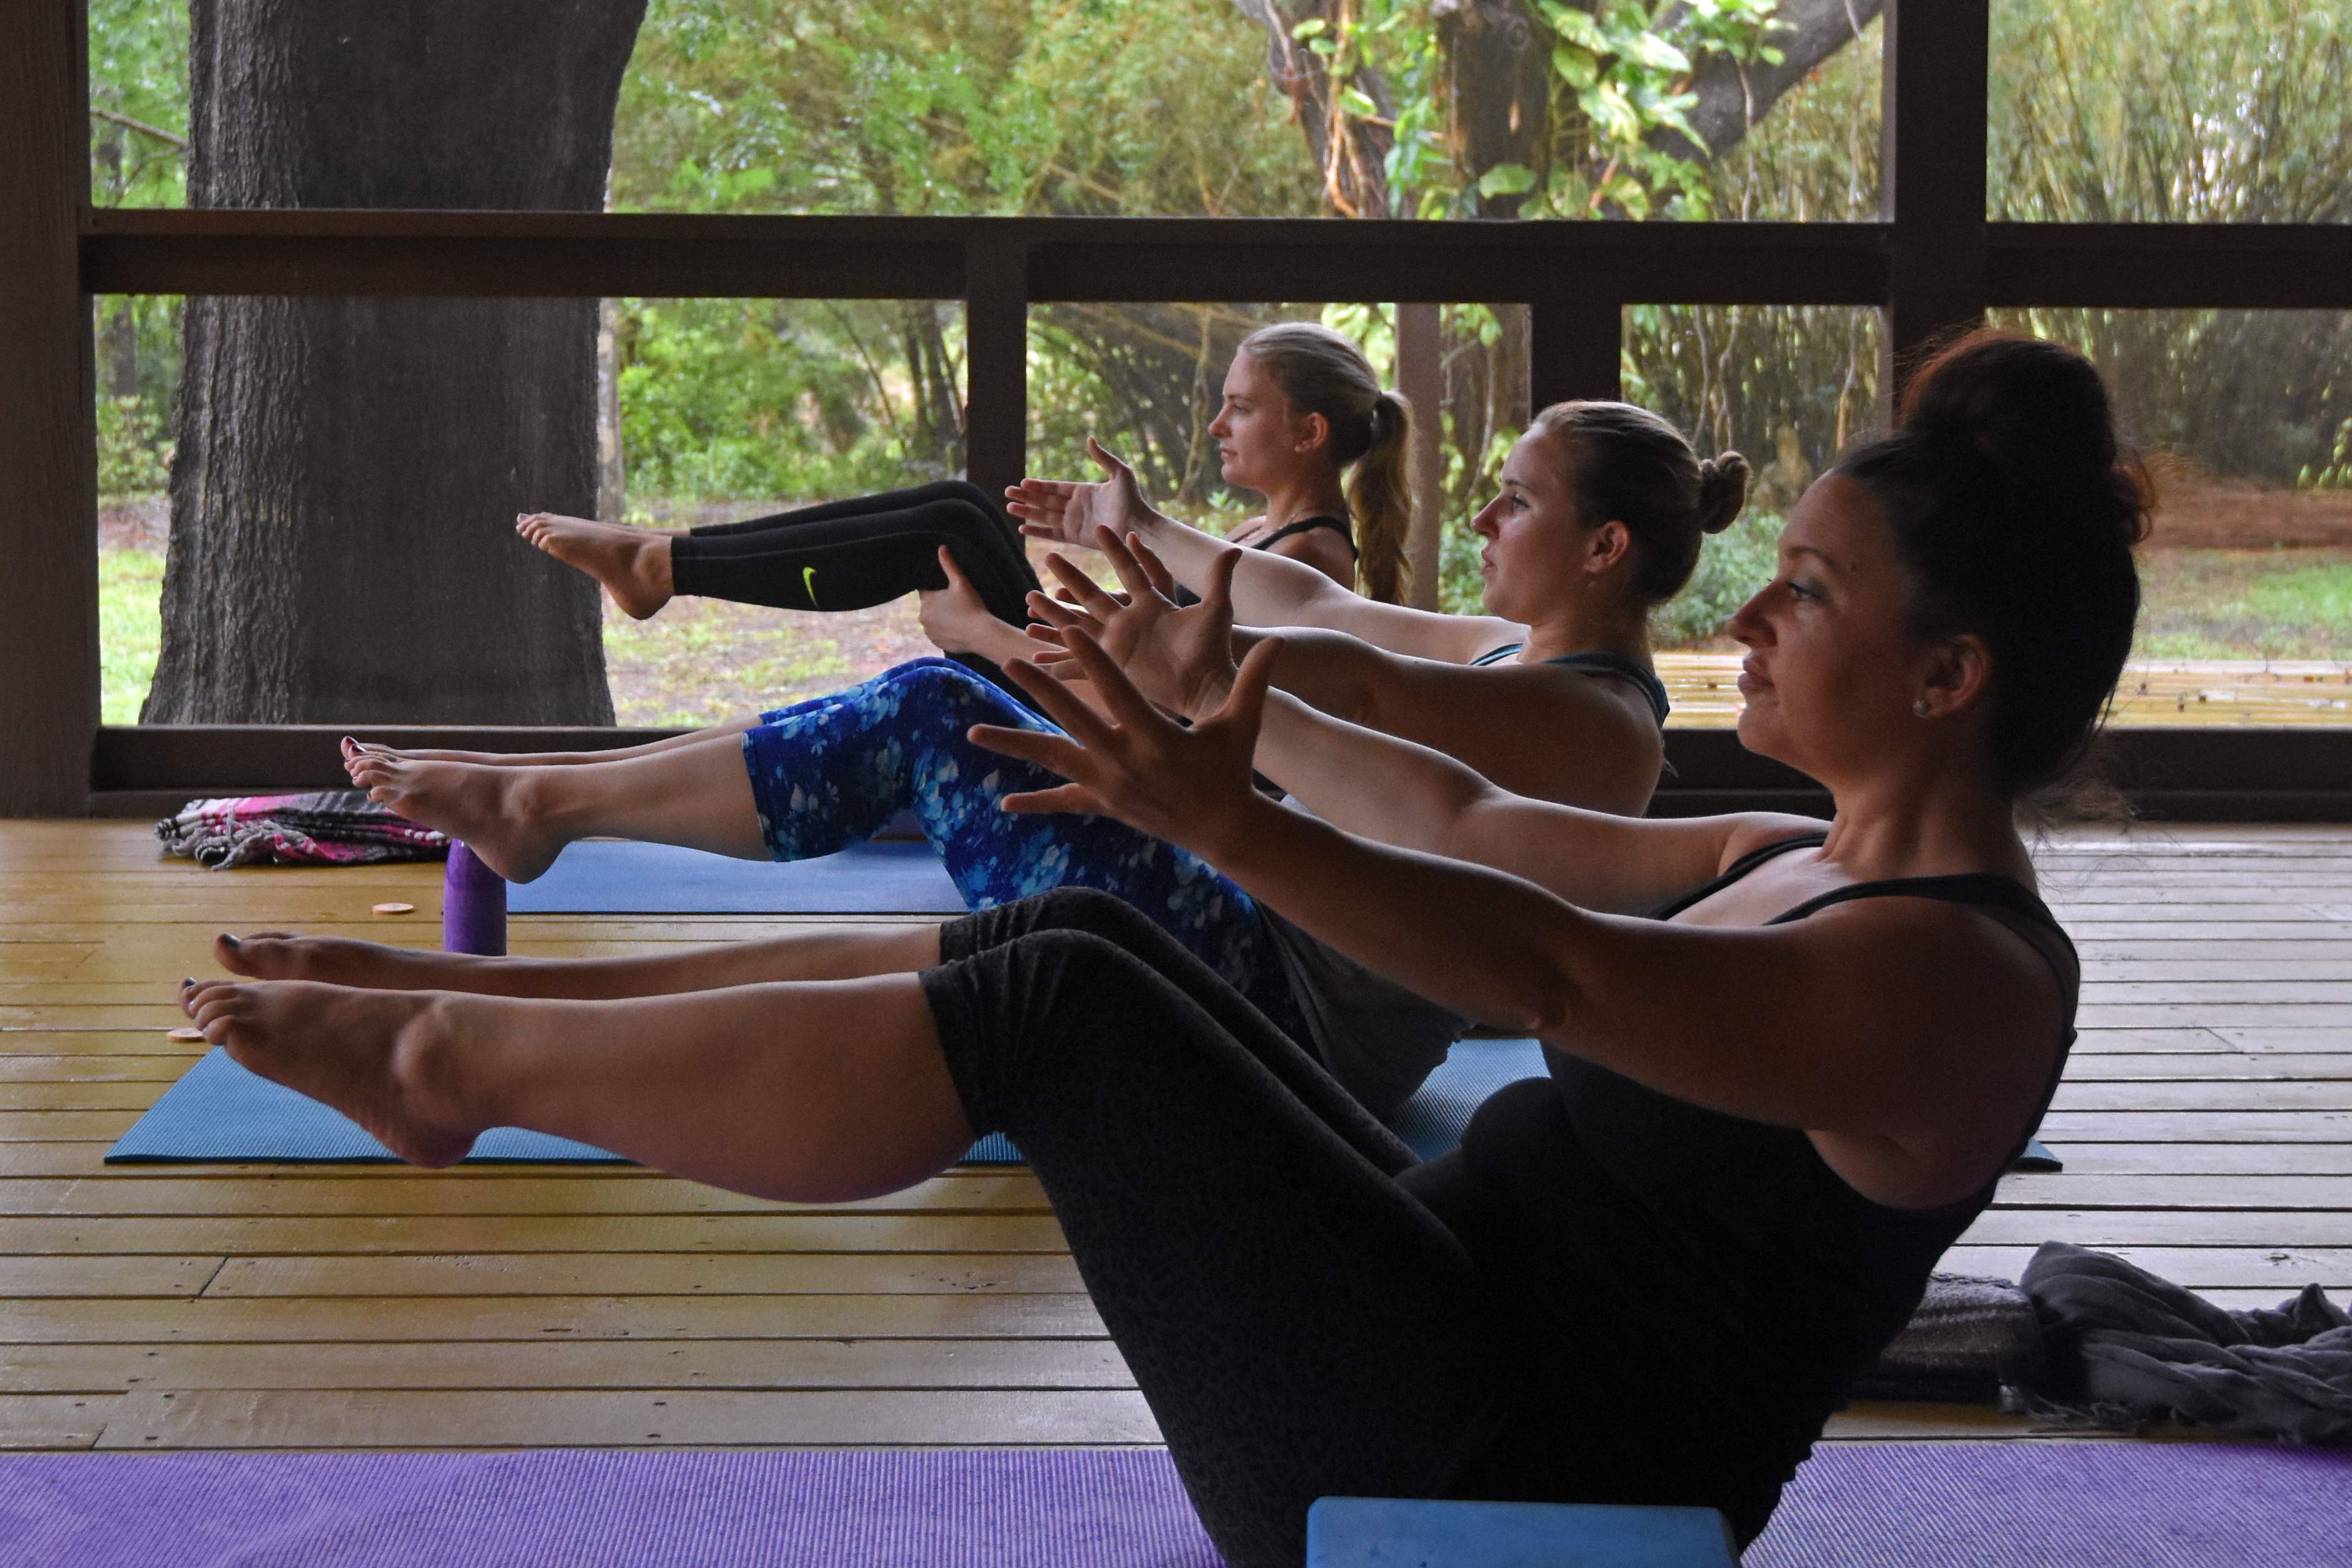 Finding A Yoga Retreat To Stretch The Mind And Body